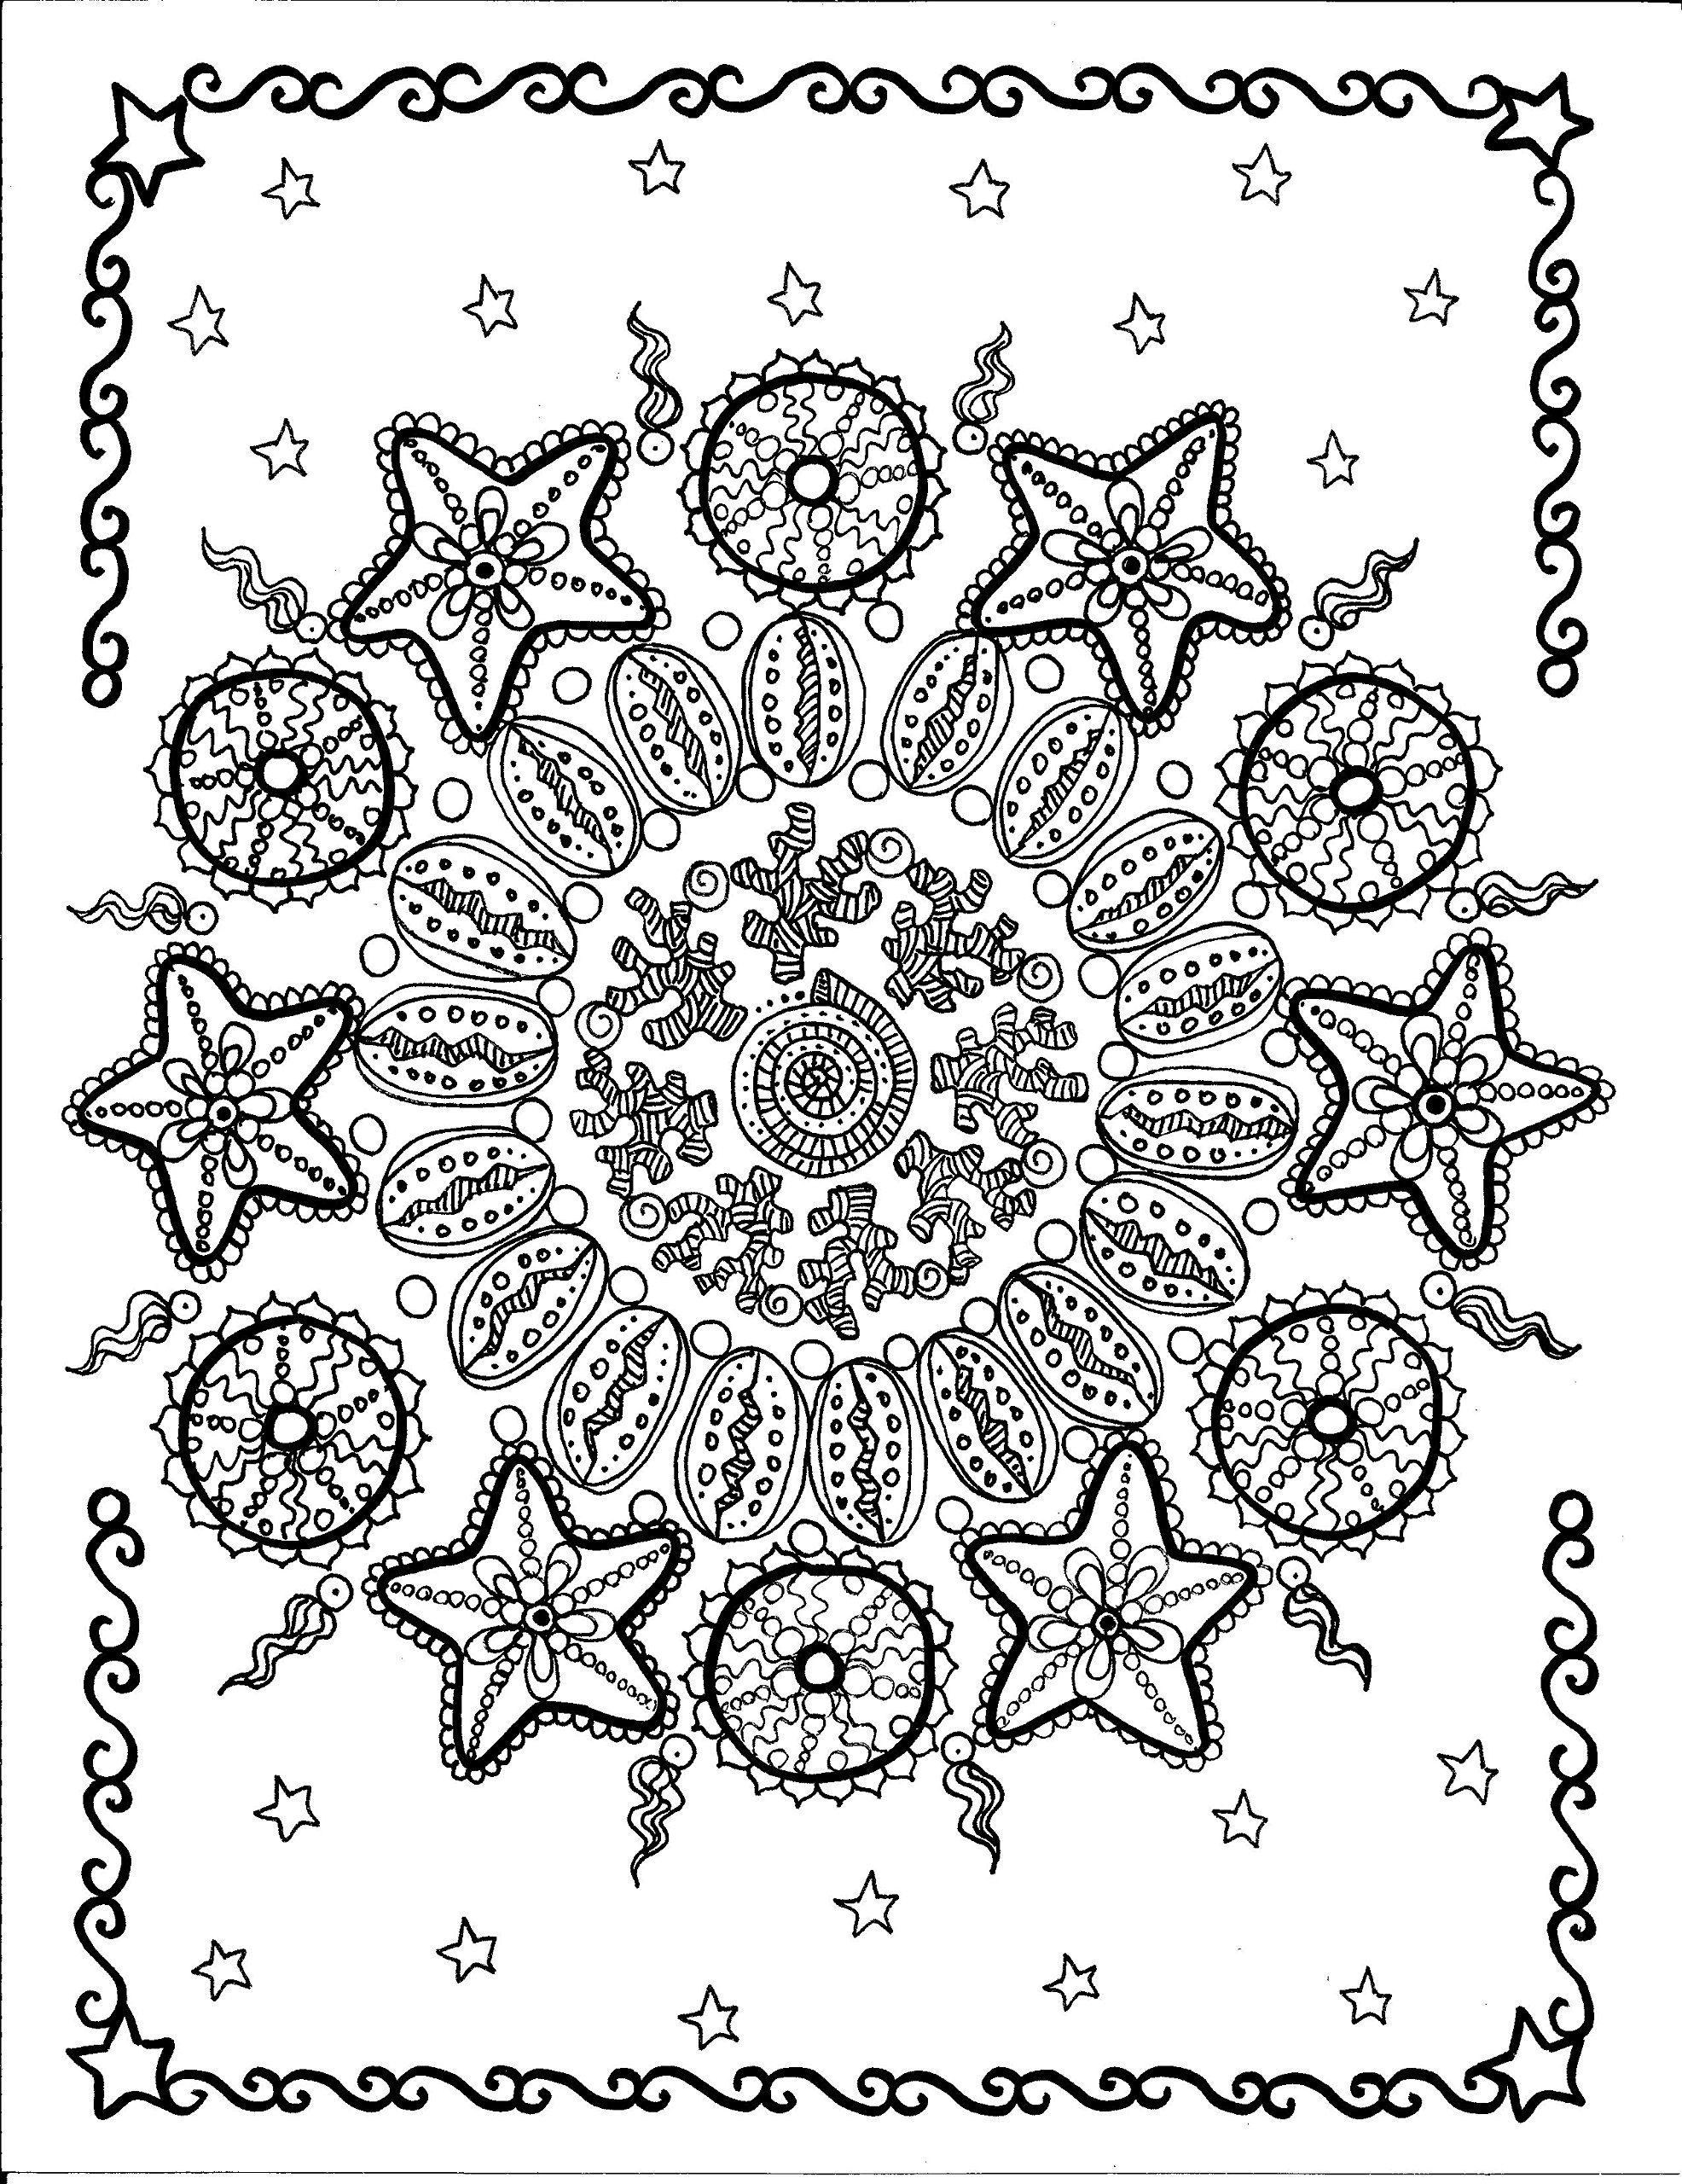 Stress Less Relaxation Coloring Book for Adults: Deborah Muller ...